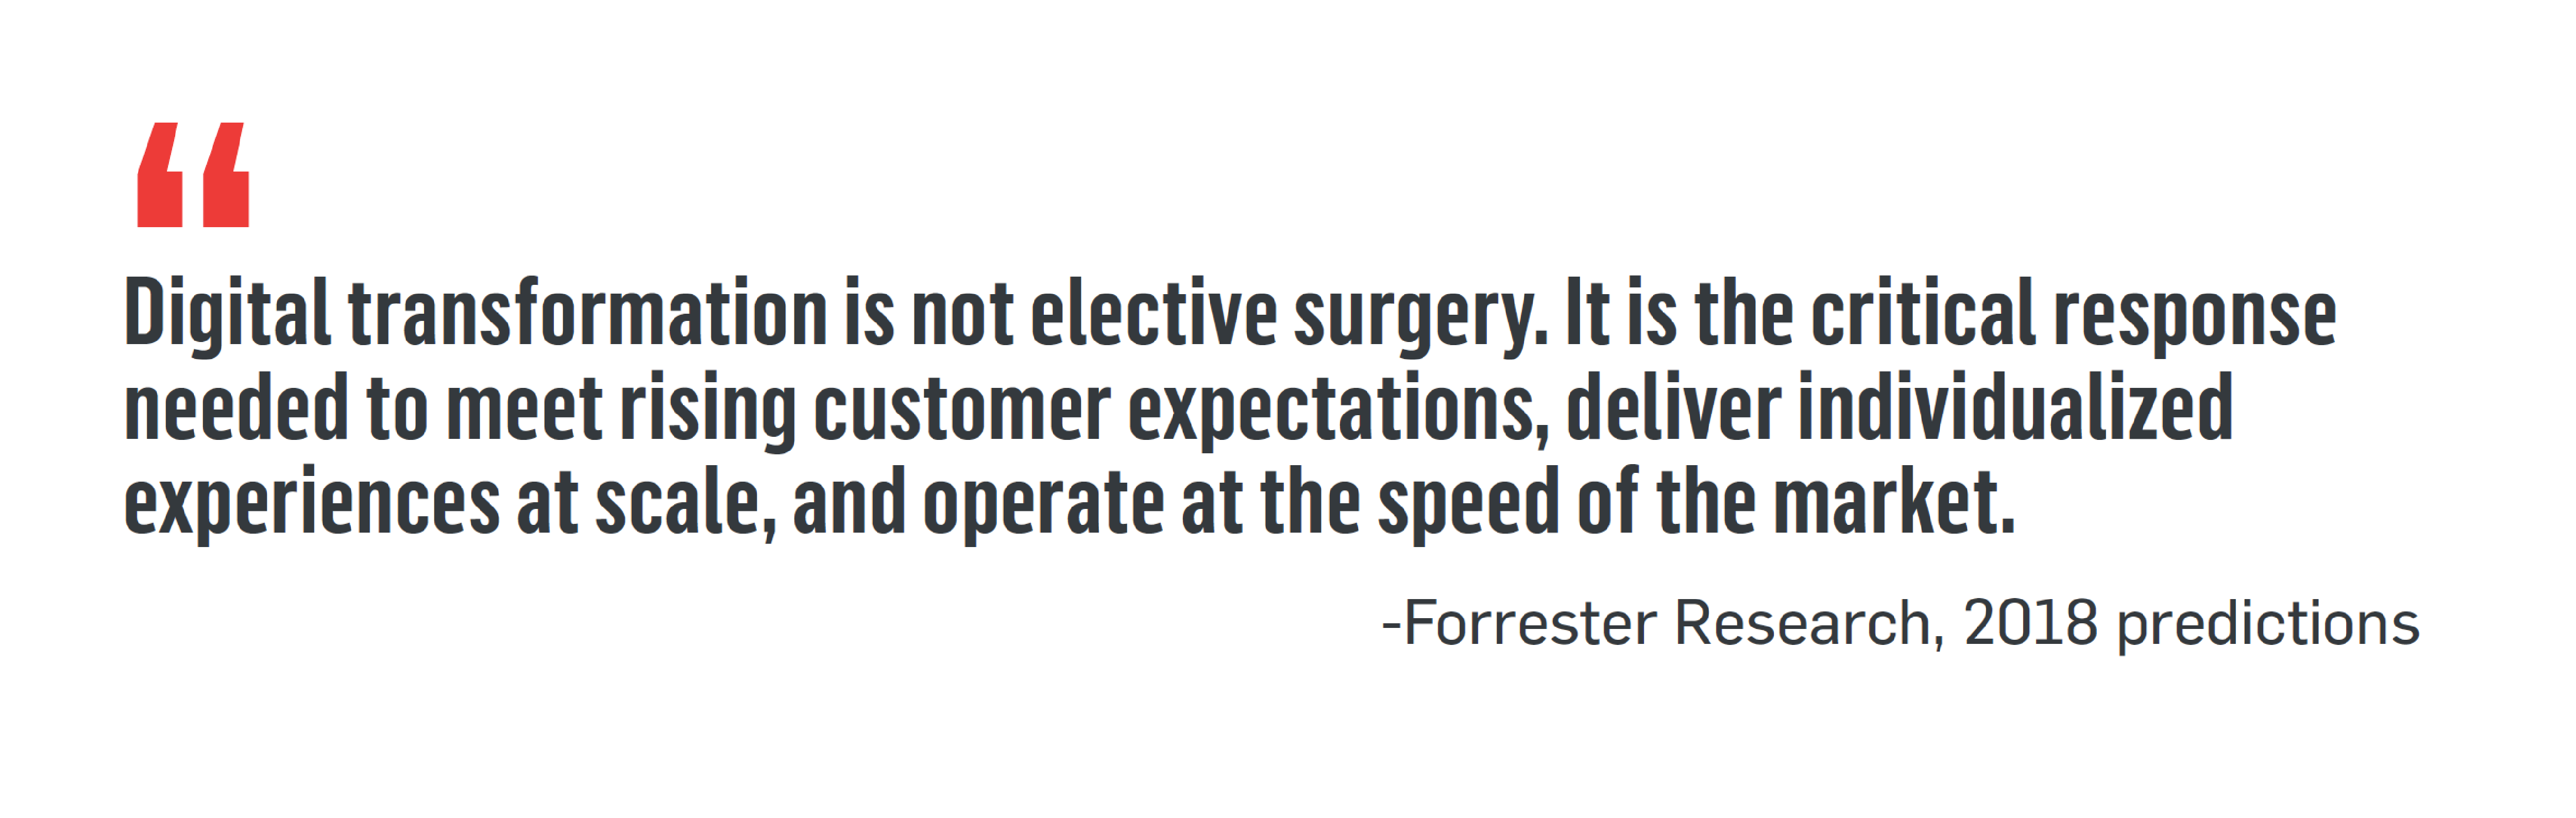 """Digital transformation is not elective surgery. It is the critical response needed to meet rising customer expectations, deliver individualized experiences at scale, and operate at the speed of the market."" -Forrester Research, 2018 predictions"